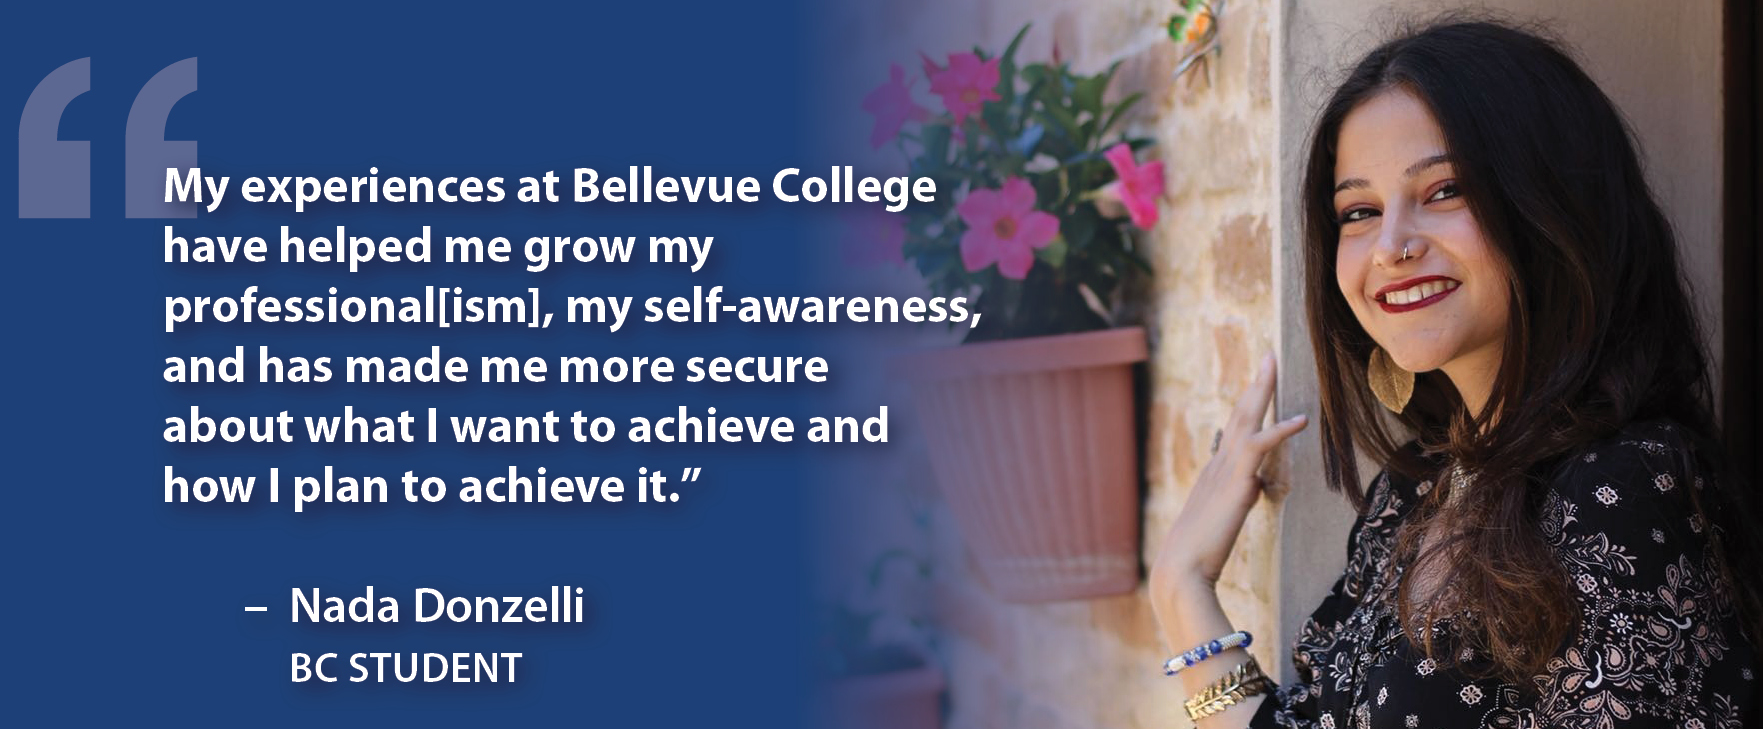 """My experiences at Bellevue College have helped me grow my professional[ism], my self-awareness, and has made me more secure about what I want to achieve and how I plan to achieve it."""" - Nada Donzelli, BC Student"""